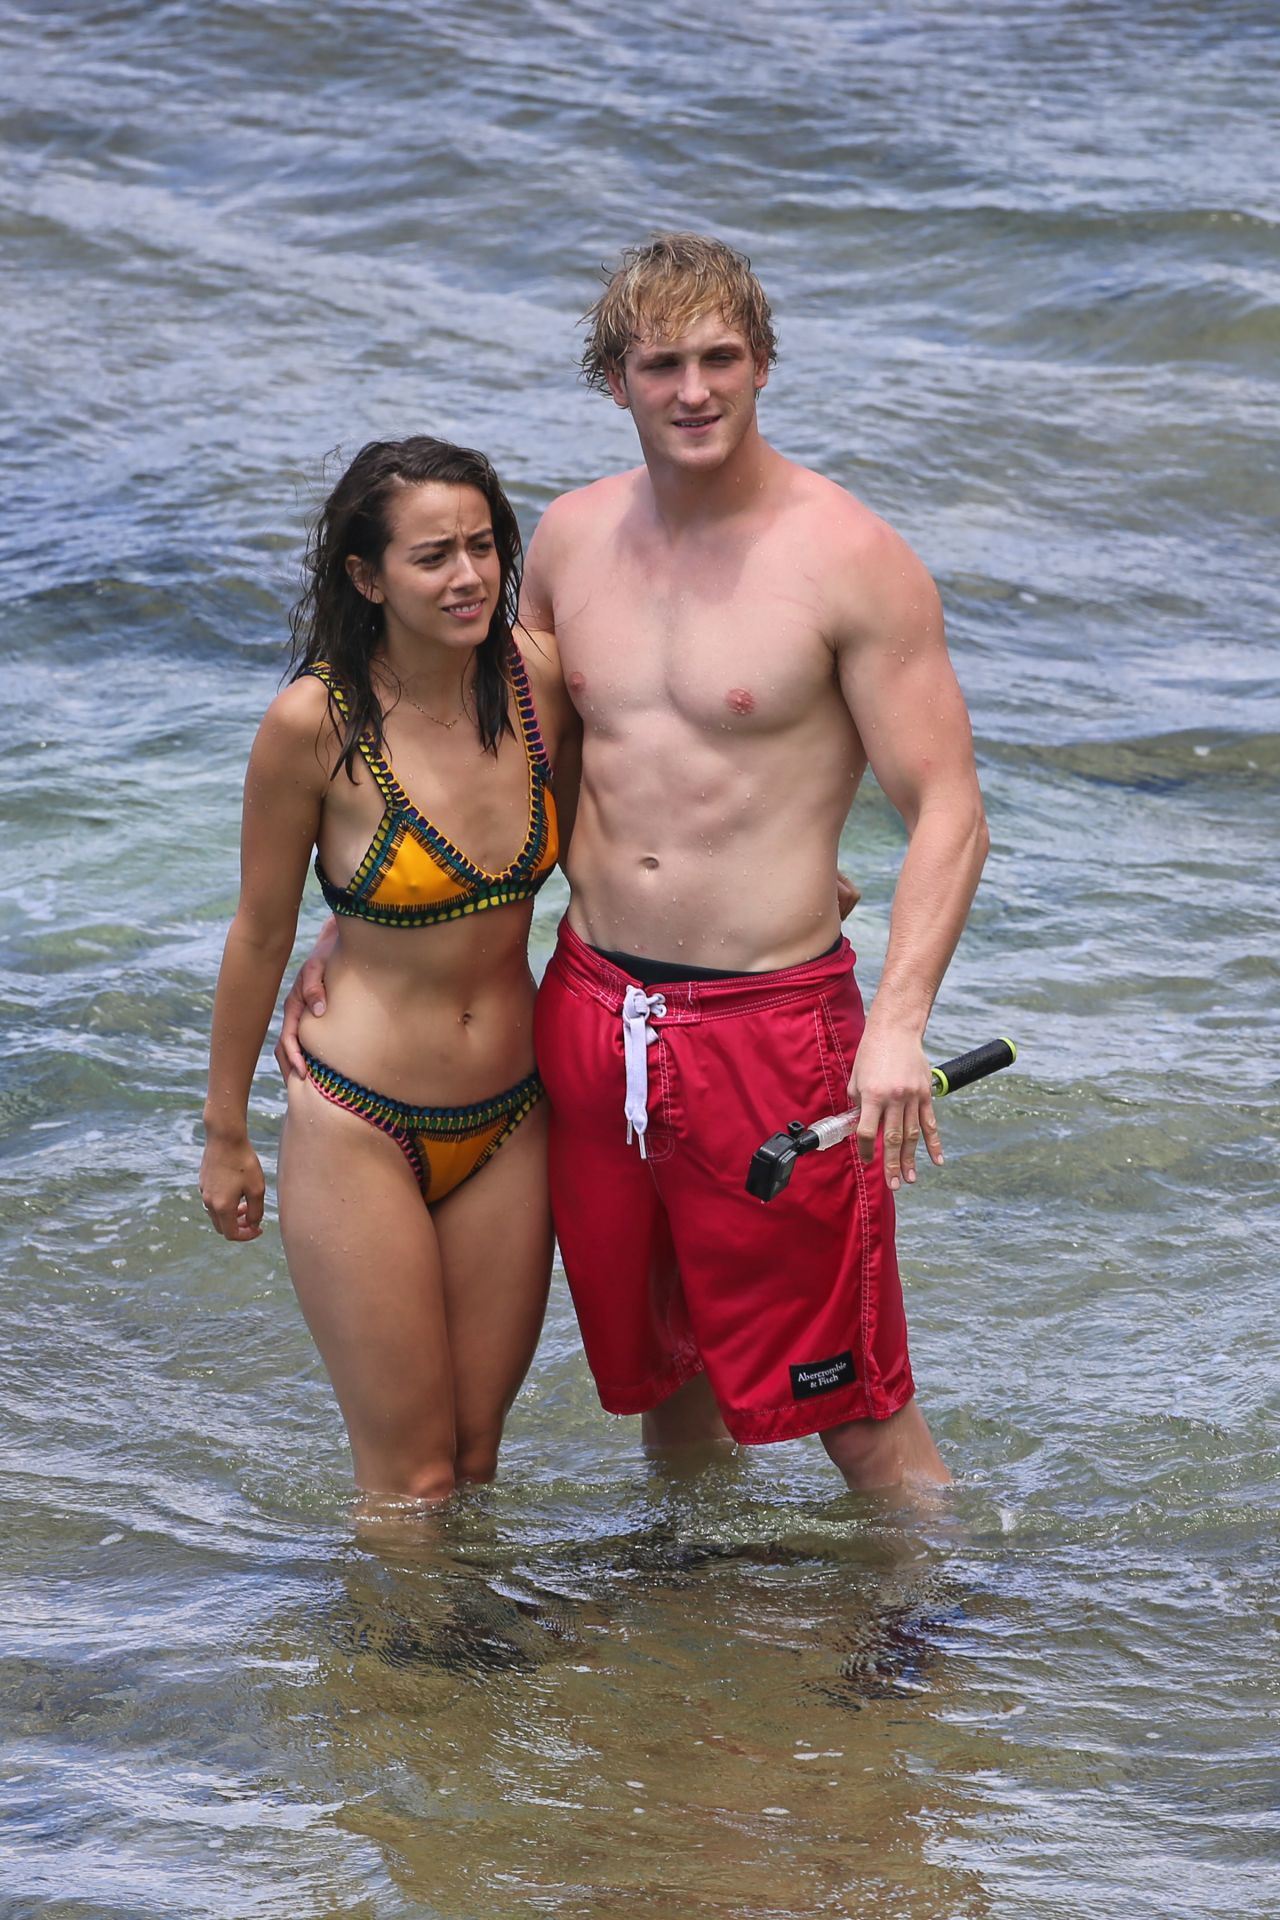 Le Meilleur Chloe Bennet In B*K*N* With Her New Boyfriend Logan Paul Ce Mois Ci